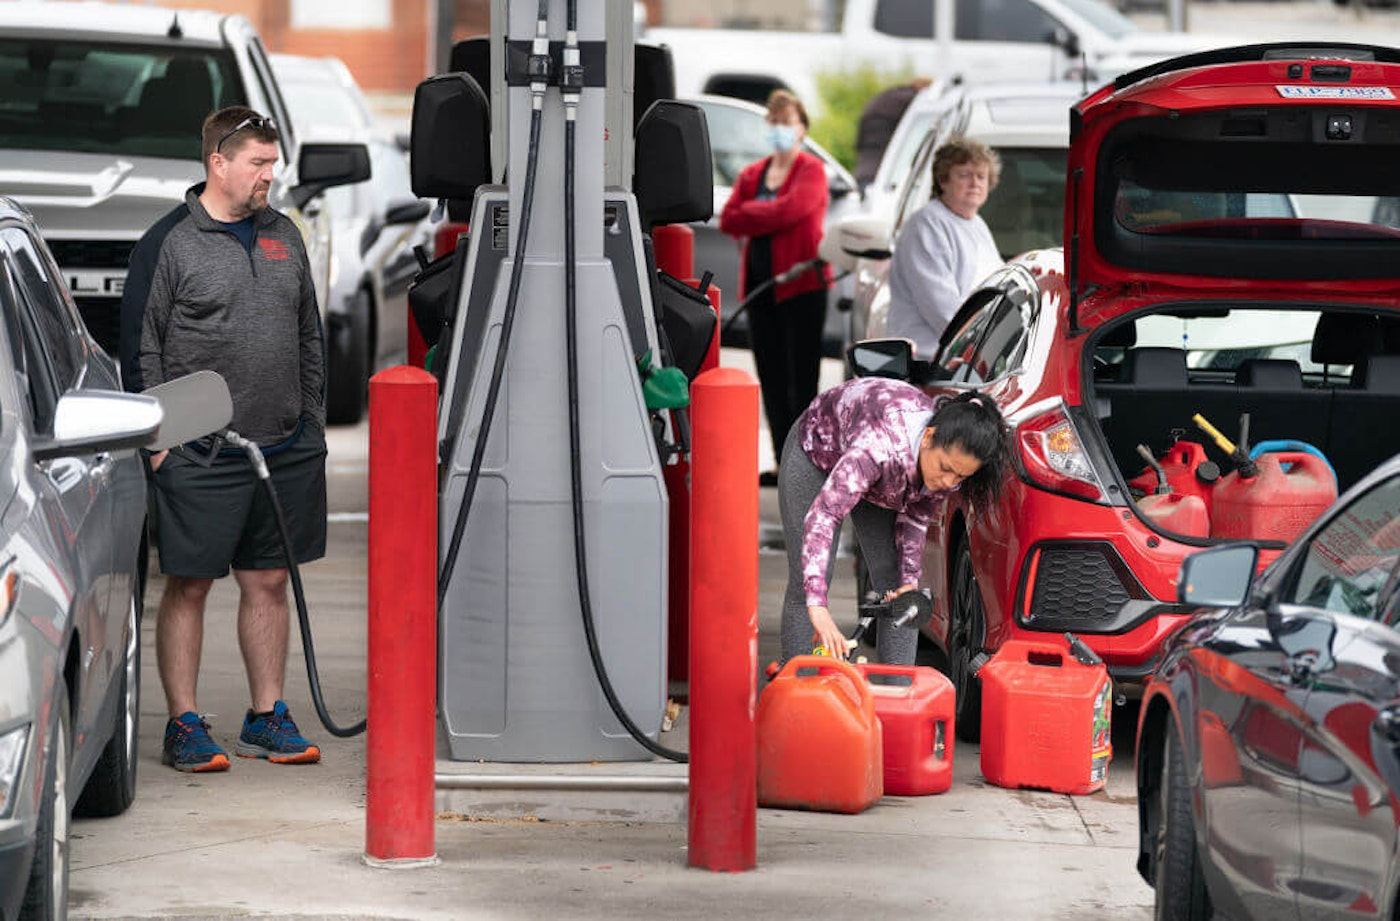 BENSON, NC - MAY 12: Motorists use gas pumps at a refueling station on May 12, 2021 in Benson, North Carolina. Most stations in the area along I-95 are without fuel following the Colonial Pipeline hack. The 5,500 mile long pipeline delivers a large percentage of fuel on the East Coast from Texas up to New York. (Photo by Sean Rayford/Getty Images)